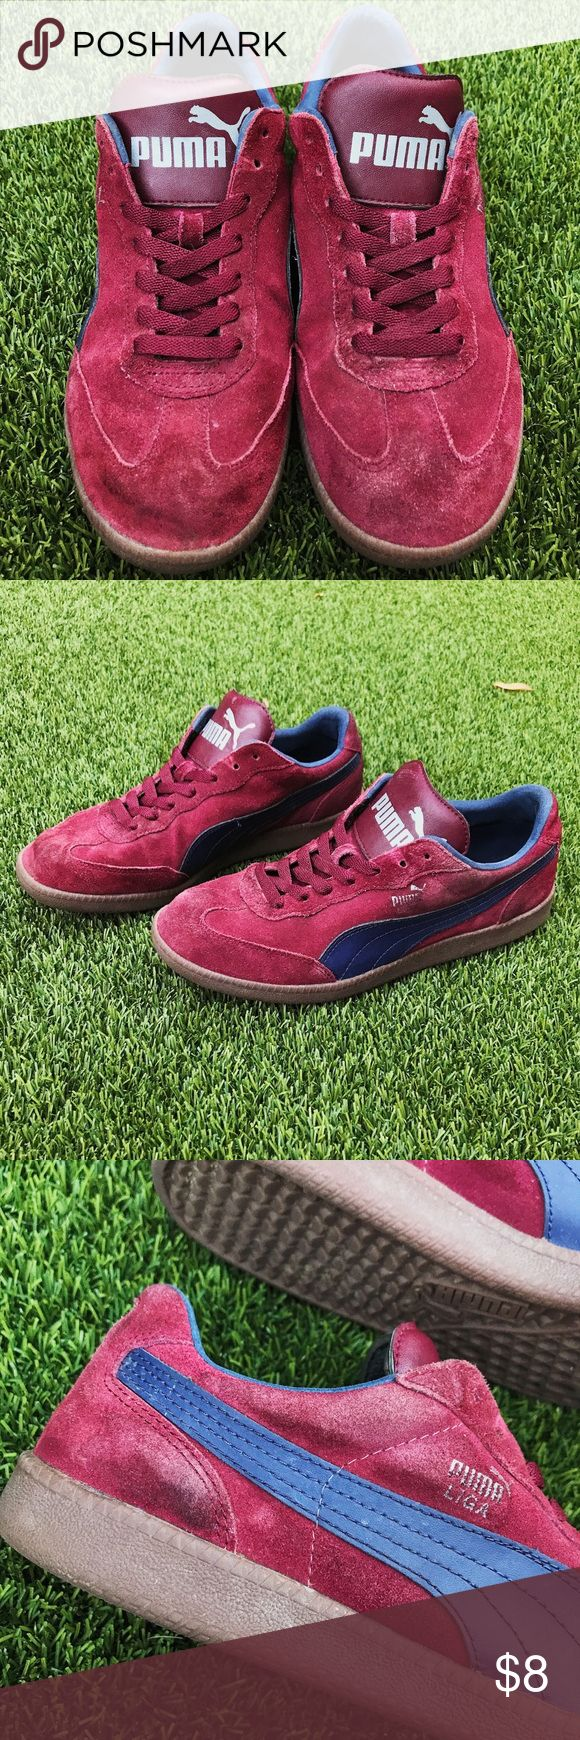 Vintage-Style Puma Liga Maroon and Navy Sneakers These retro style men's shoes in a burgundy and navy blue color are quite worn in— giving them even more of a vintage feel. As you can see from the pictures they are well loved. As with all Pumas they have lots of life left in them. They are sold as is and the buyer understands that these shoes are well worn. Puma Shoes Sneakers